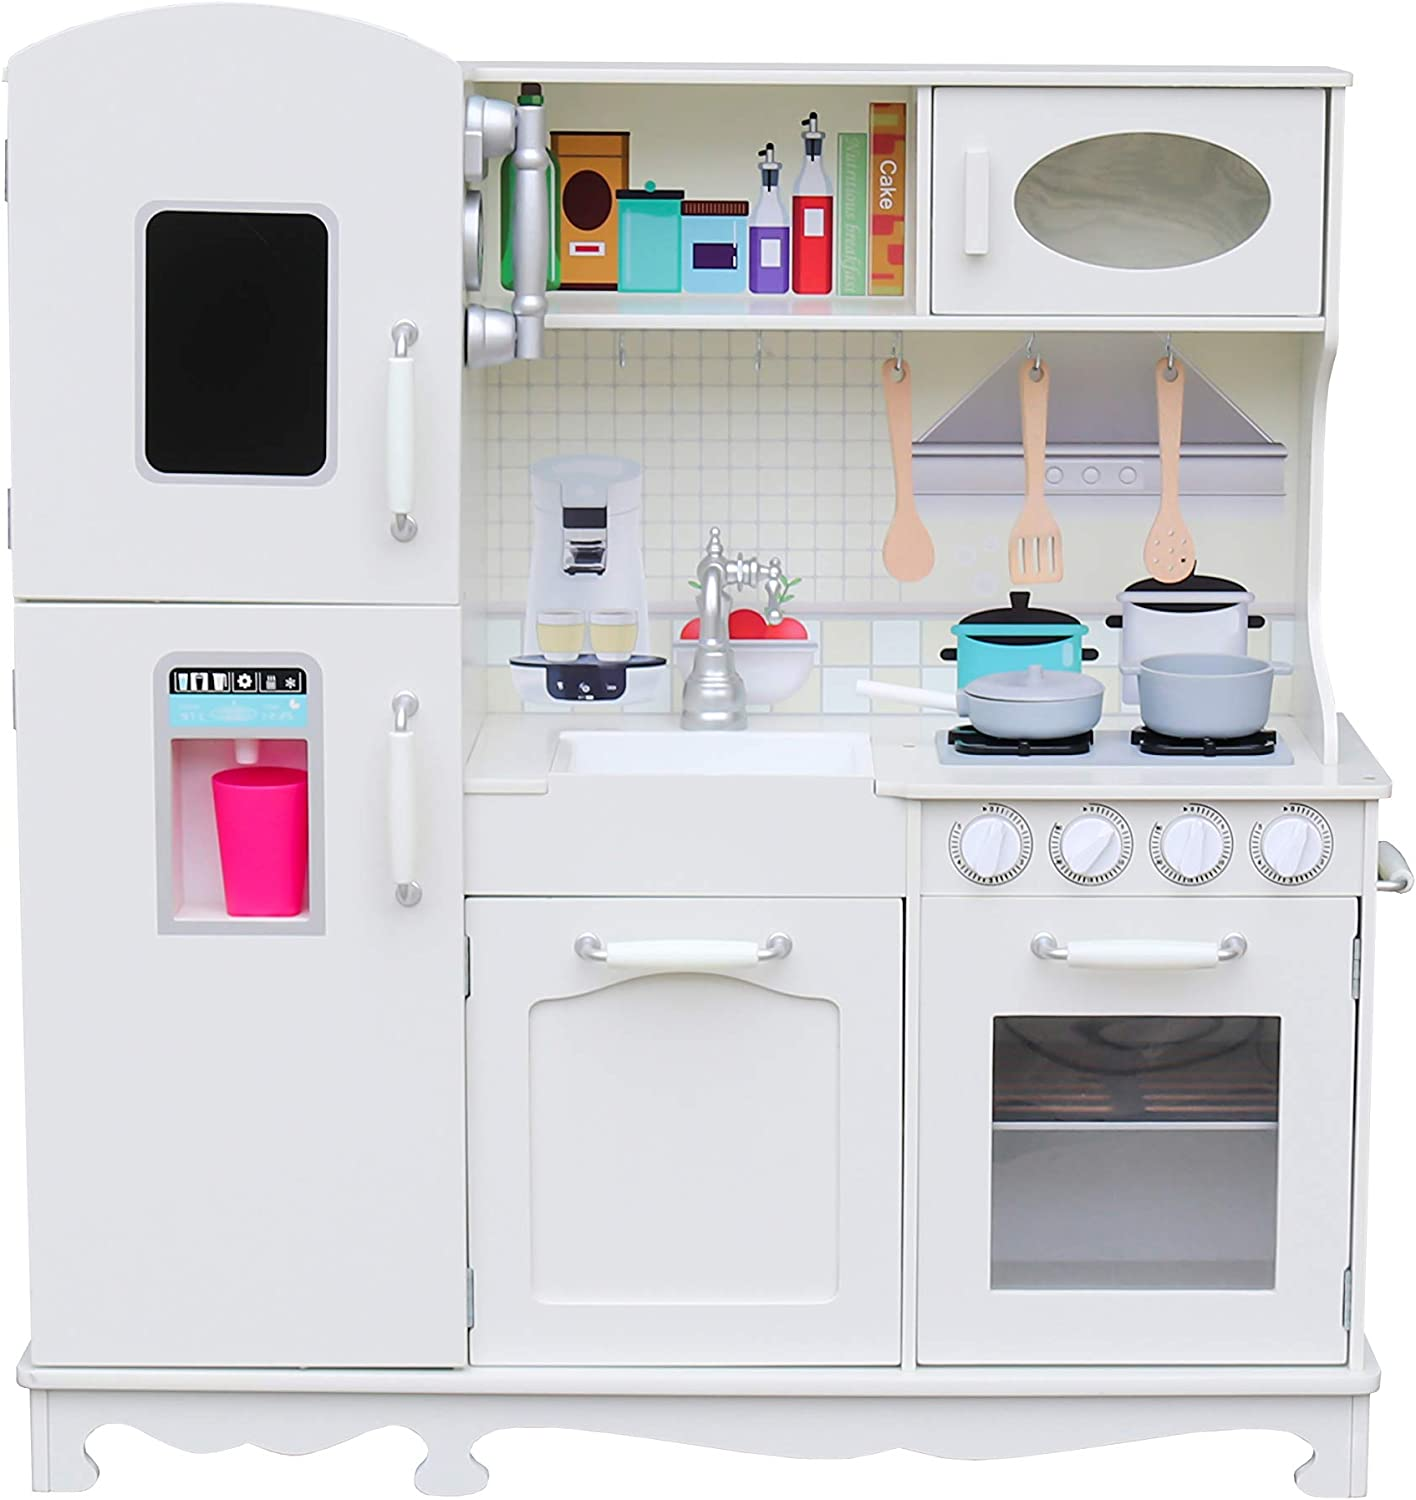 Amazon Com Play Kitchen For Toddlers Kitchen Toys Playset For Kids Pretend Play Cooking Set With Accessories Ultra Realistic Vintage Design Includes Sink Oven Stove Fridge Ice Maker And Microwave